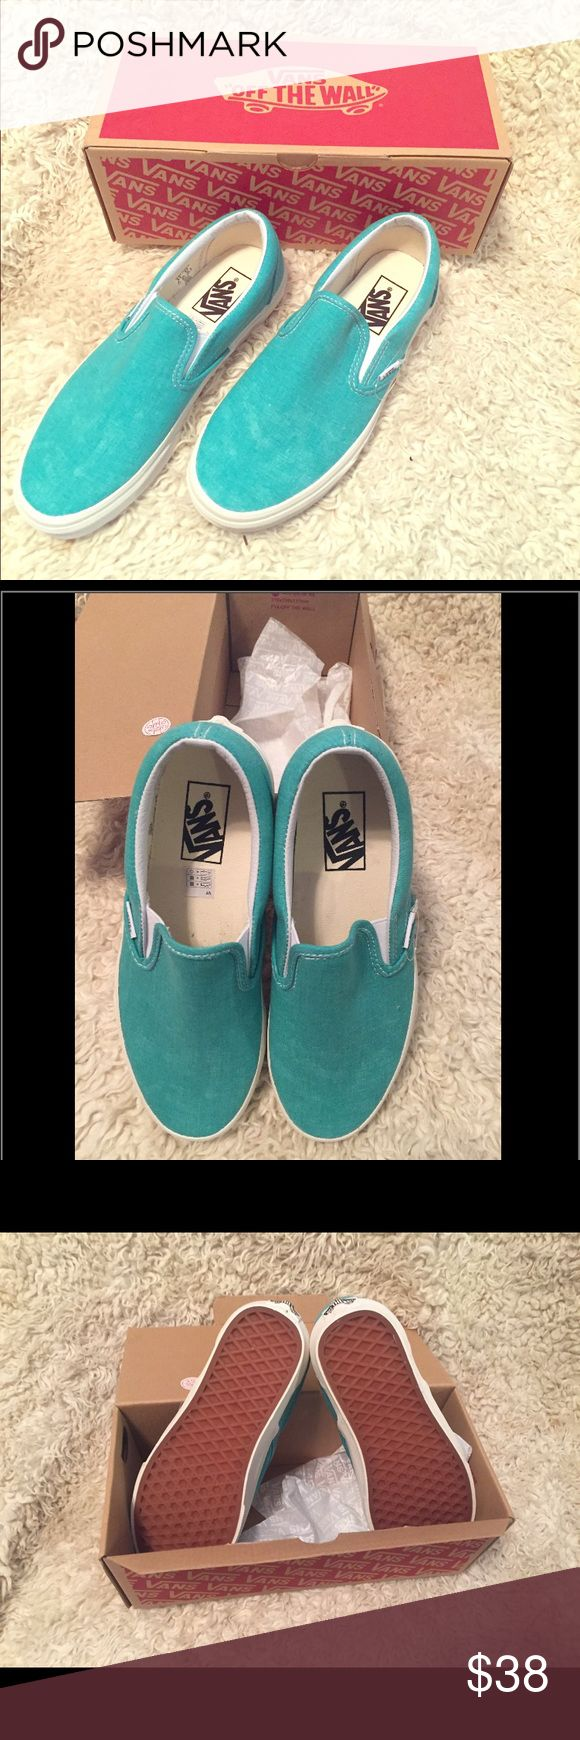 New Unisex Slip On Vans Whitewash Green I bought these for myself thinking that they were a size 6.5 ladies. I got home and realized that the sales rep gave me 6.5 mens, which is a size 8 in women's 😳 They have been sitting in my closet ever since because I am such a weirdo and dislike having to go back to a store to make a return. That is the exact reason why my house is filled with so many shoes & clothes. And I do have a shopping addiction...but I am working through that as we…